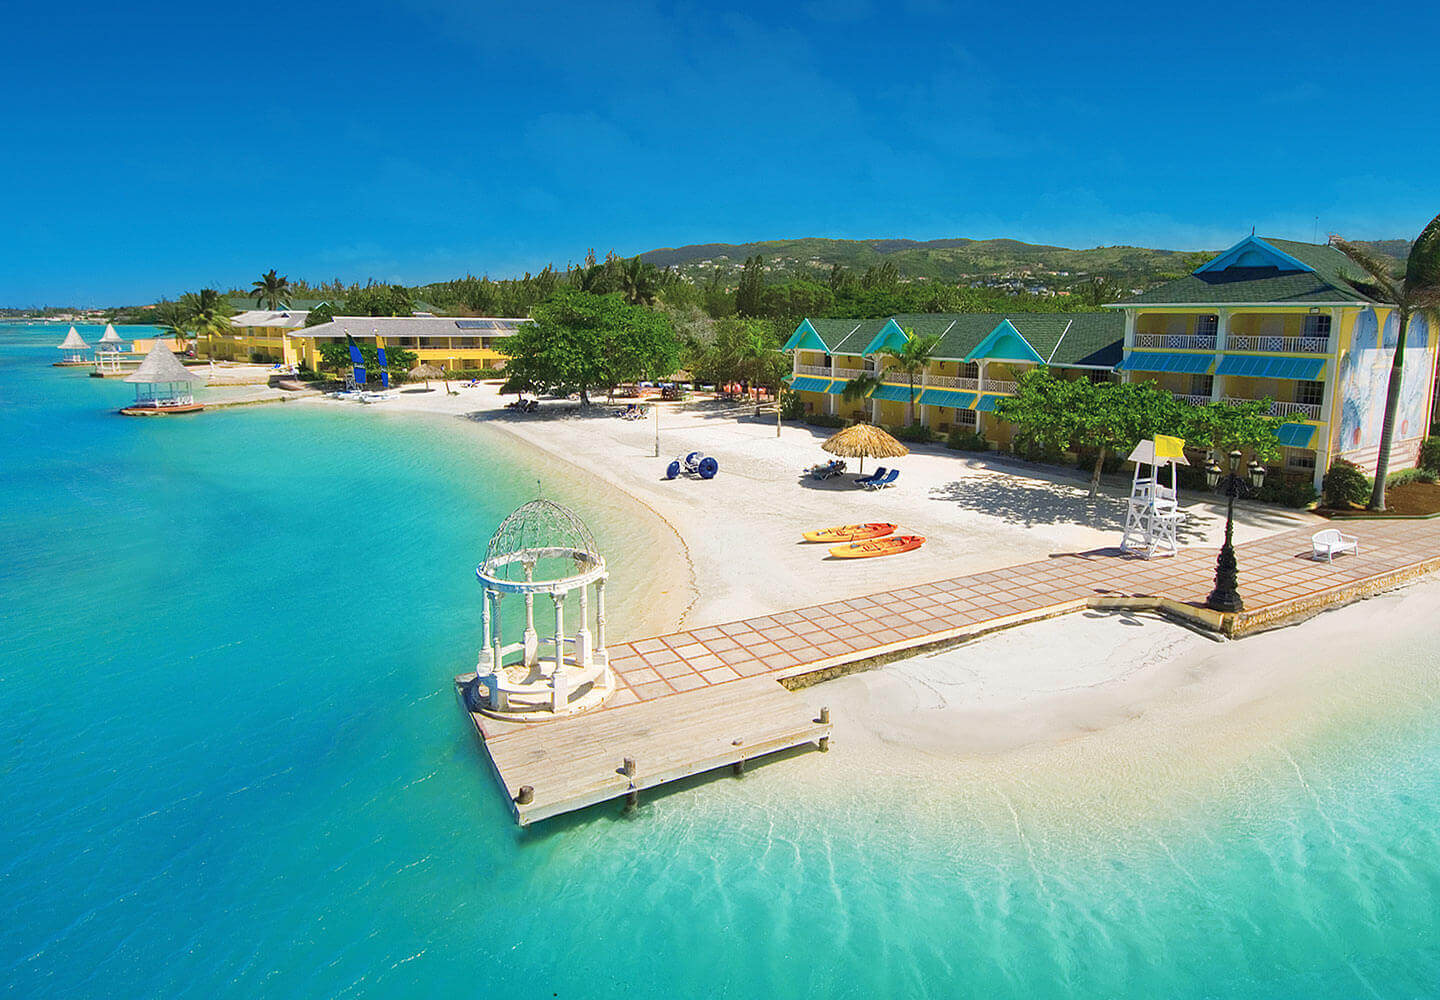 Sandals Royal Caribbean - Jamaica Vacations